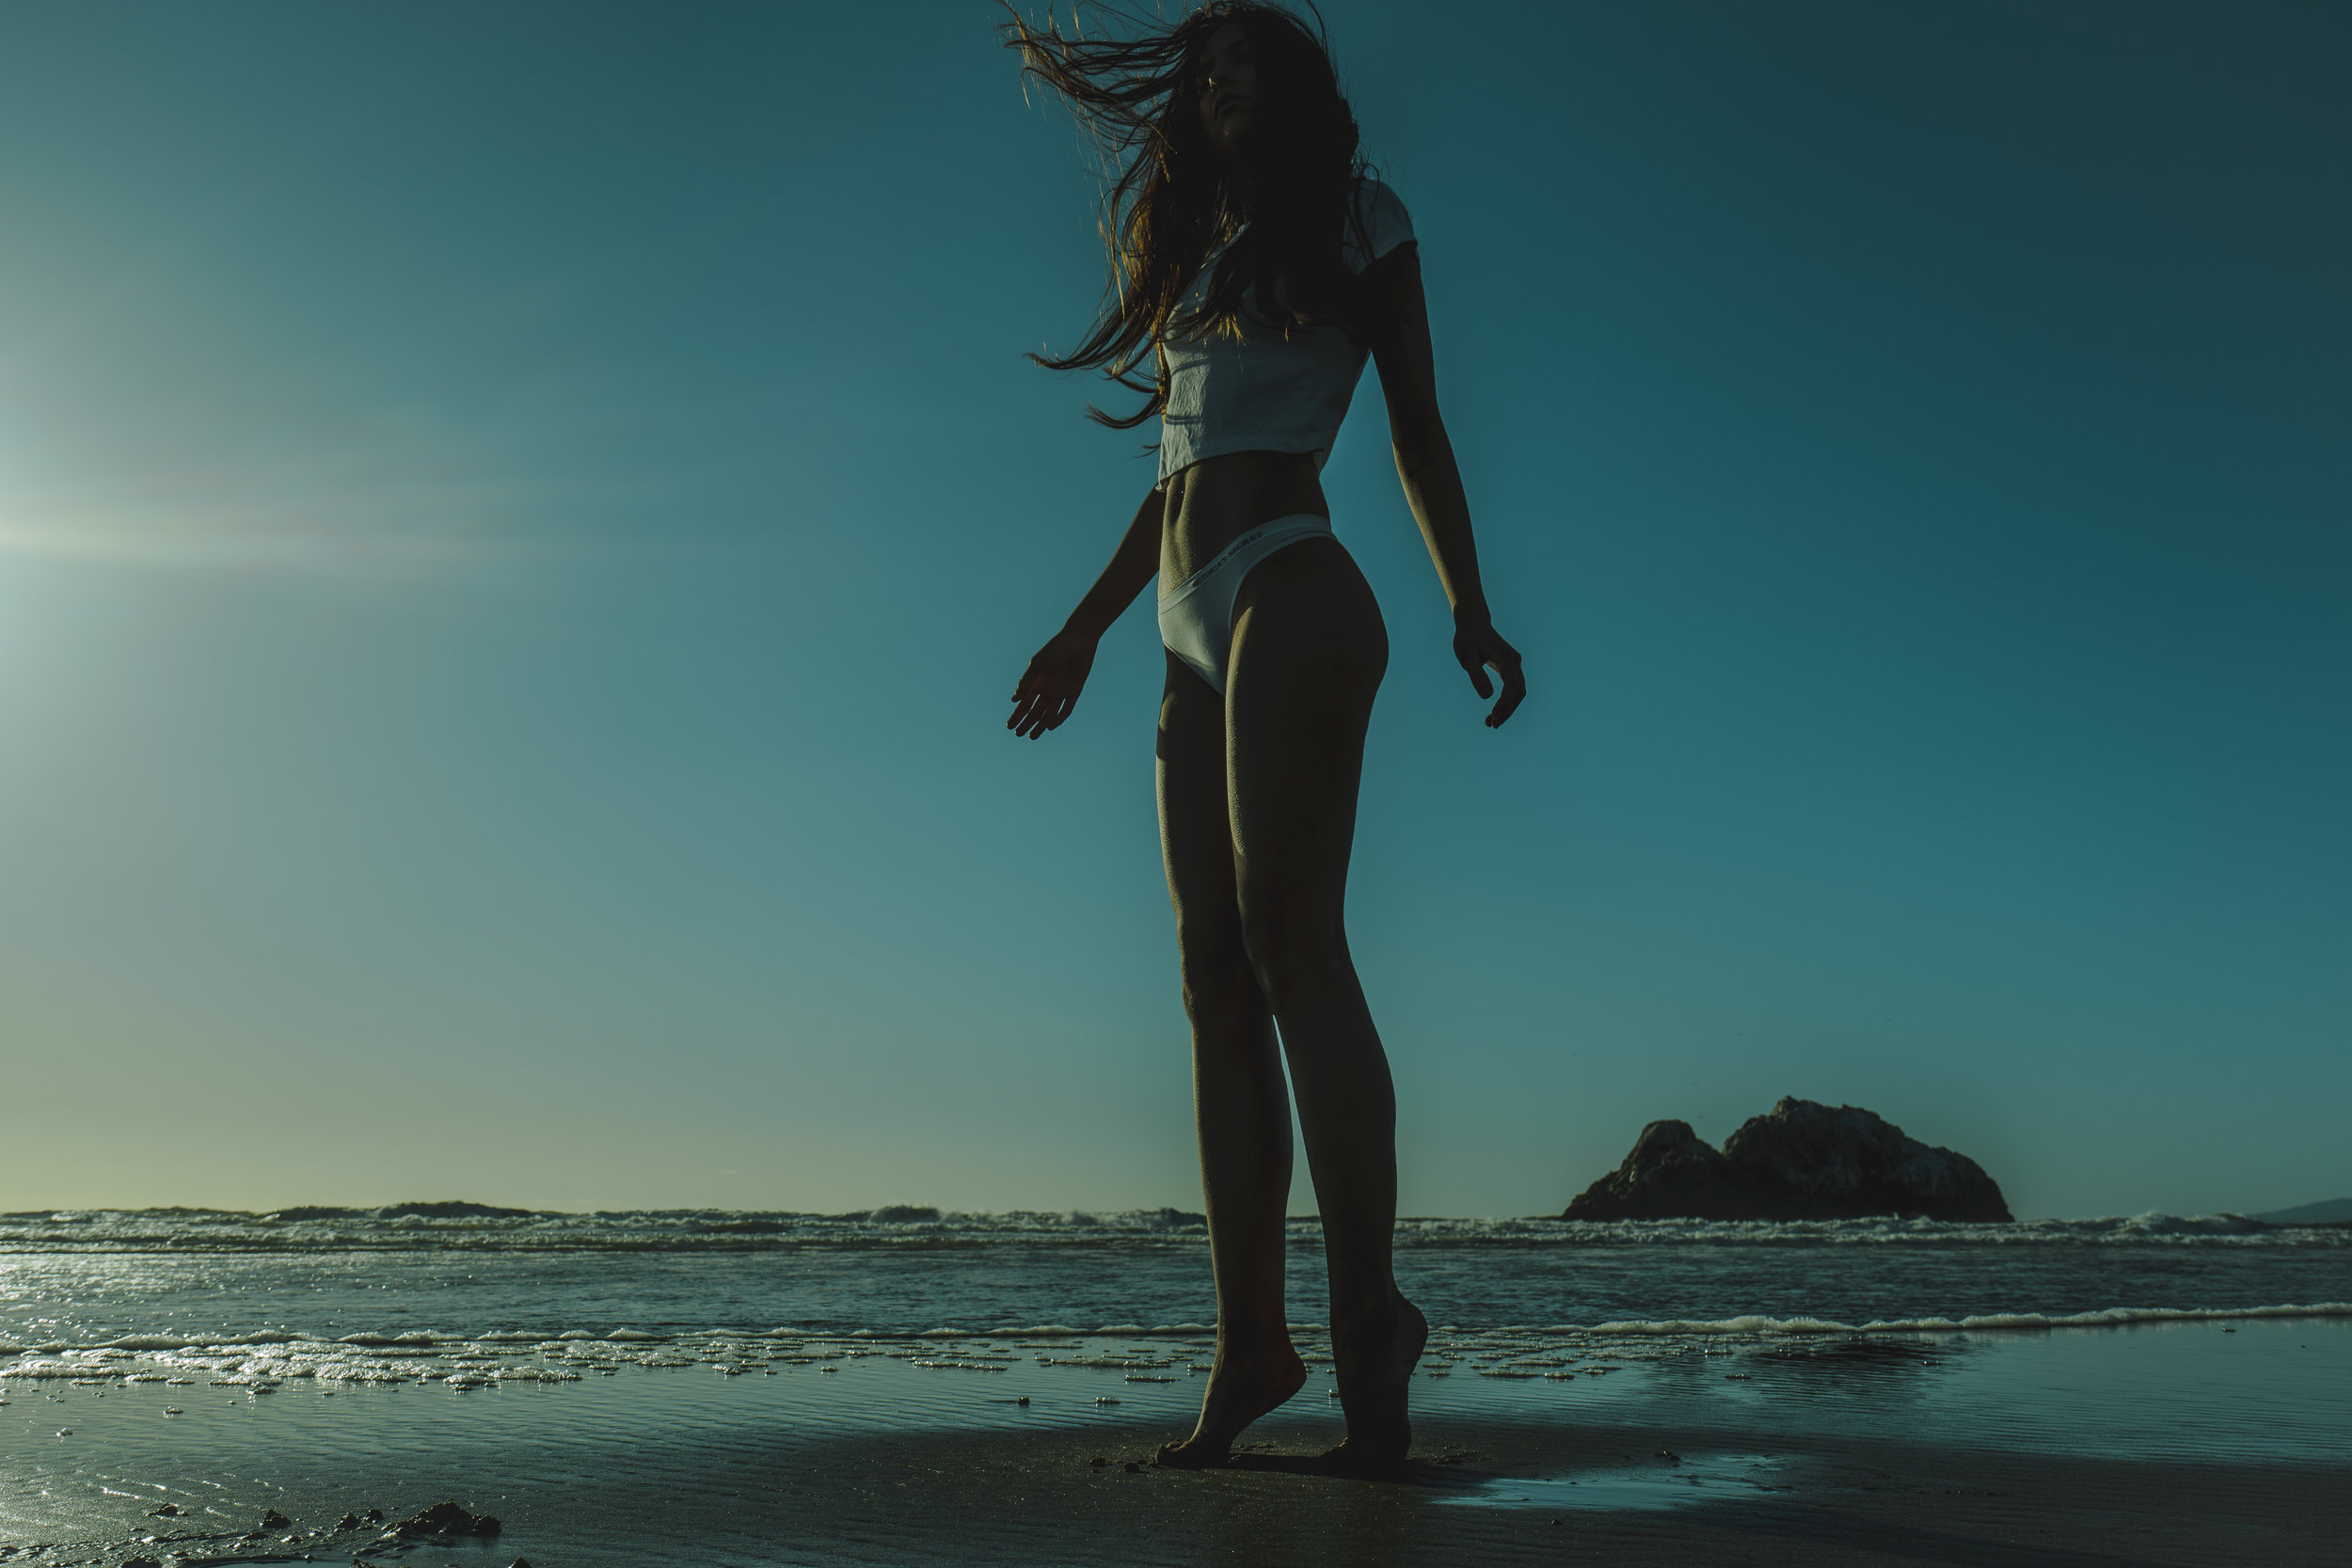 WINTER OF THE ELECTRIC BEACH - Starring Arial Jade